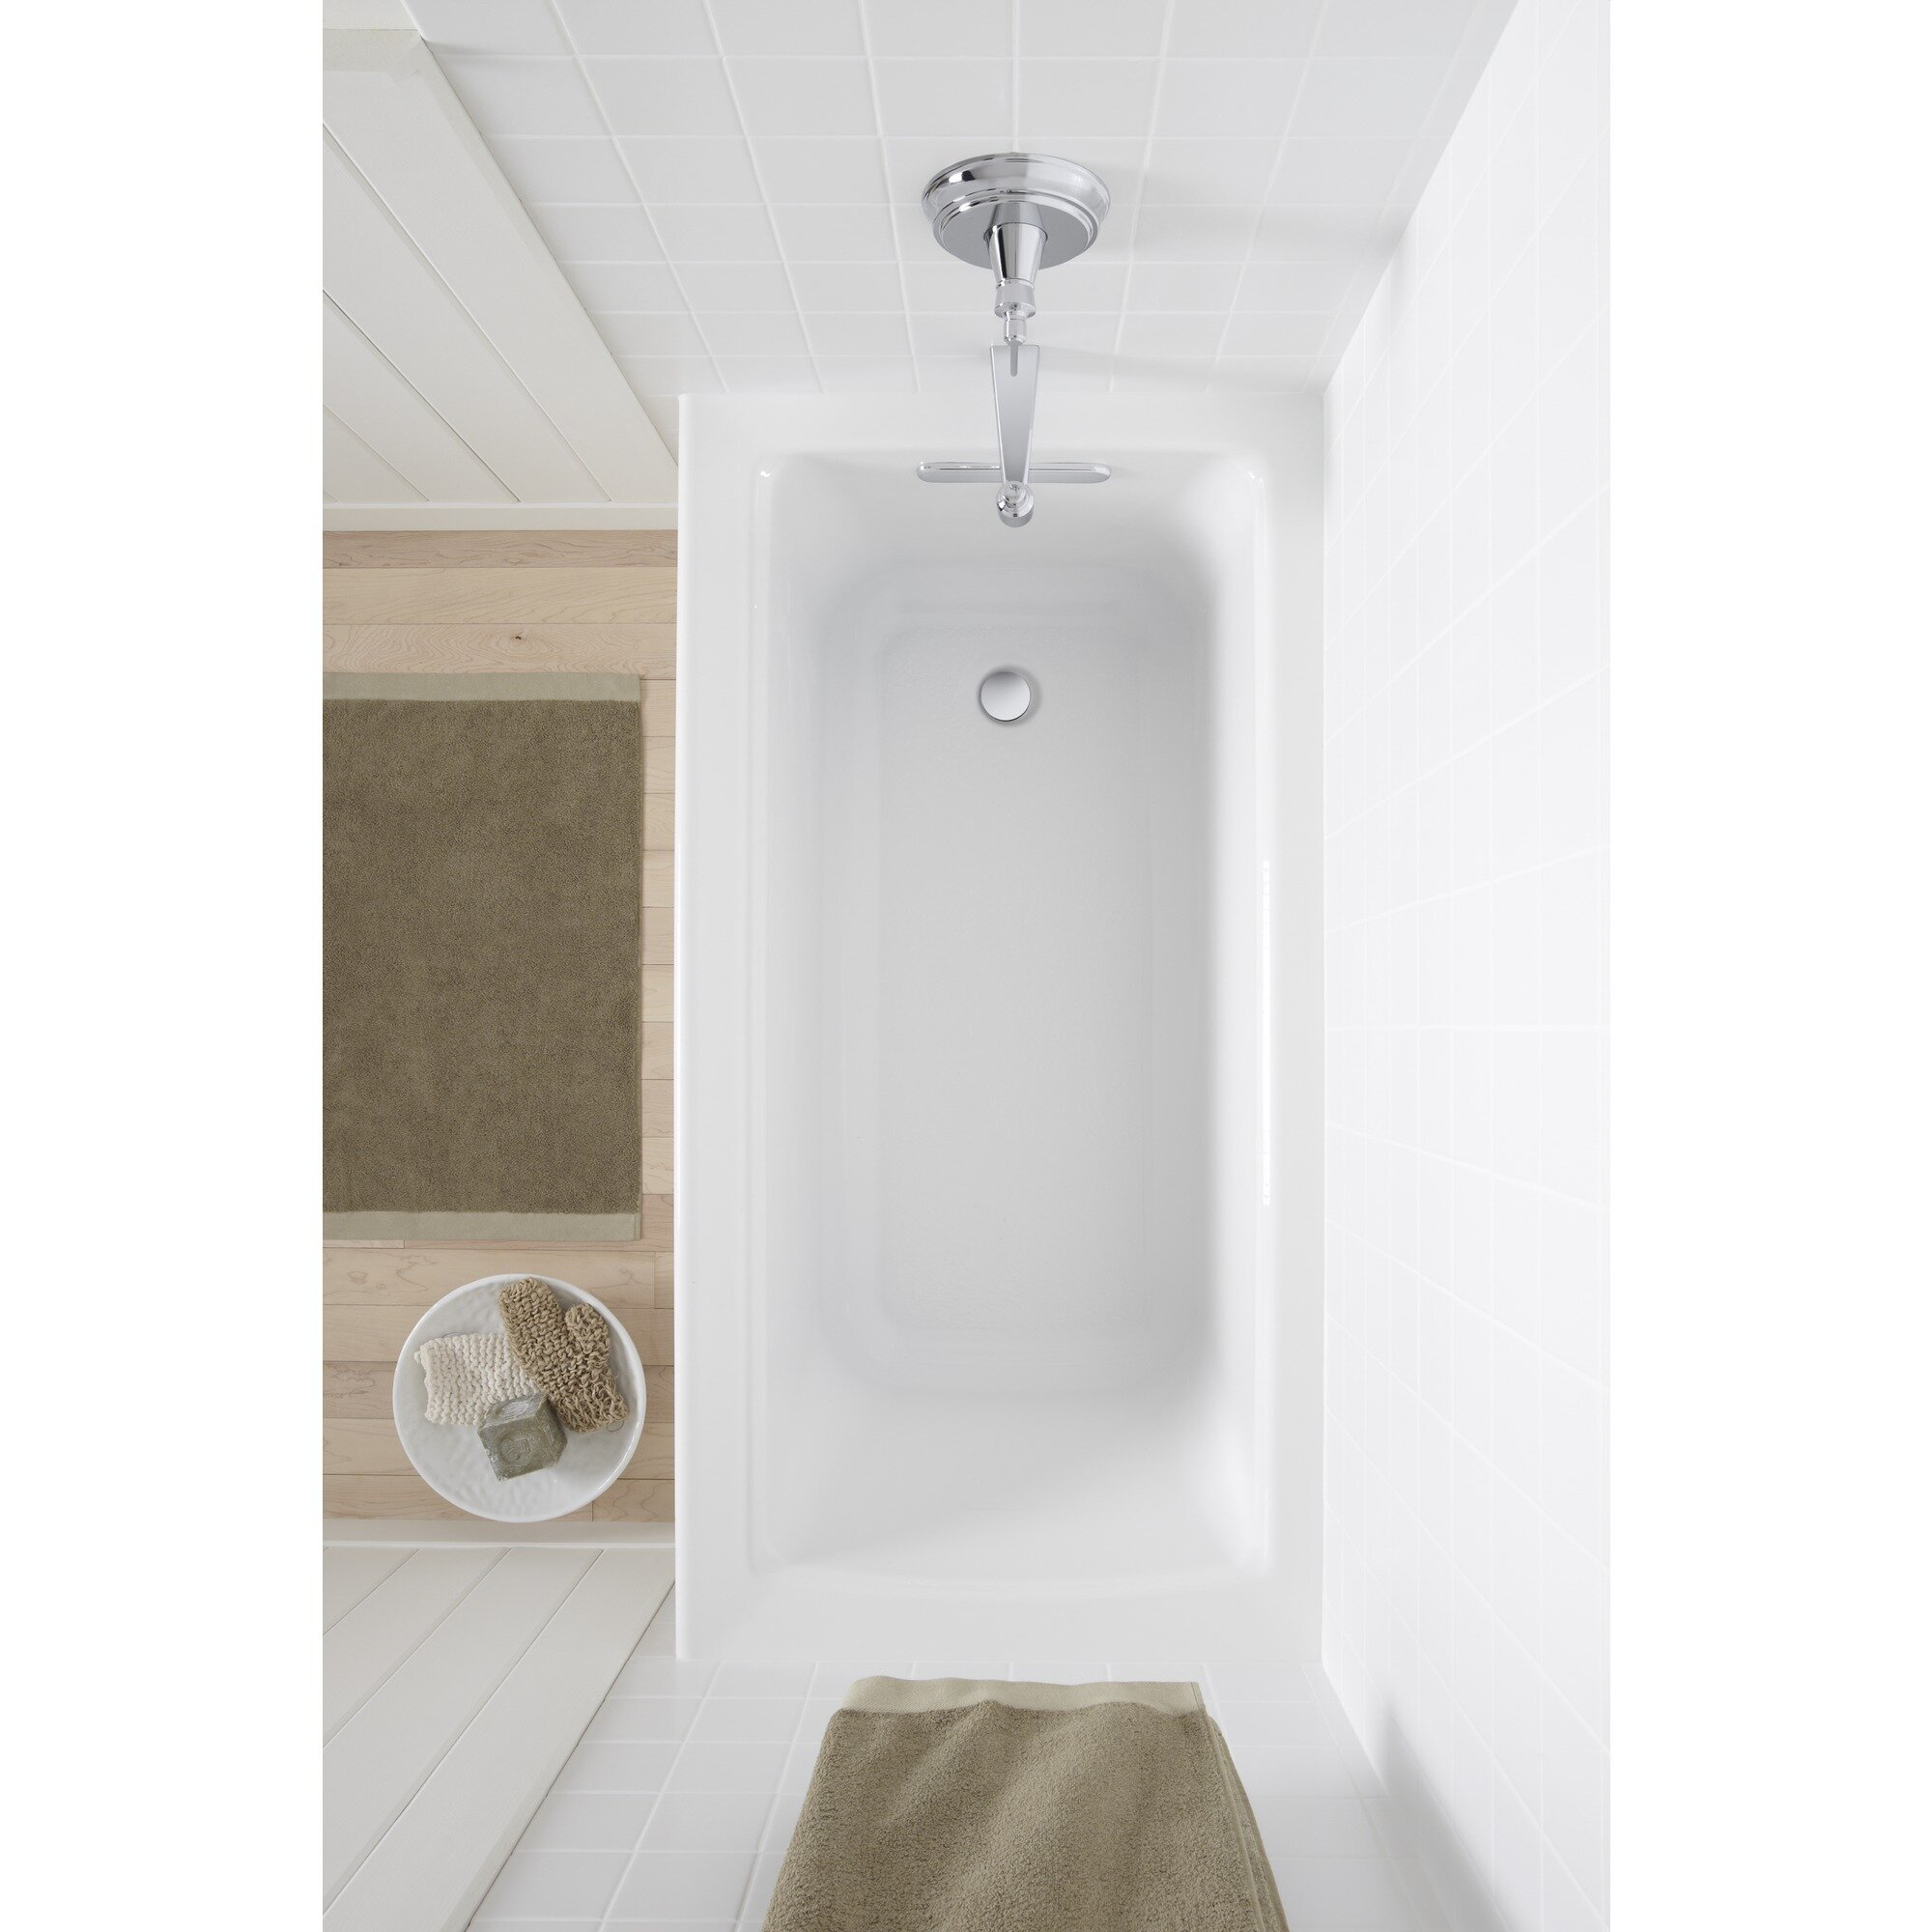 K 1946 La 0 7 96 Kohler Archer 60 X 30 Alcove Soaking Bathtub Reviews Wayfair